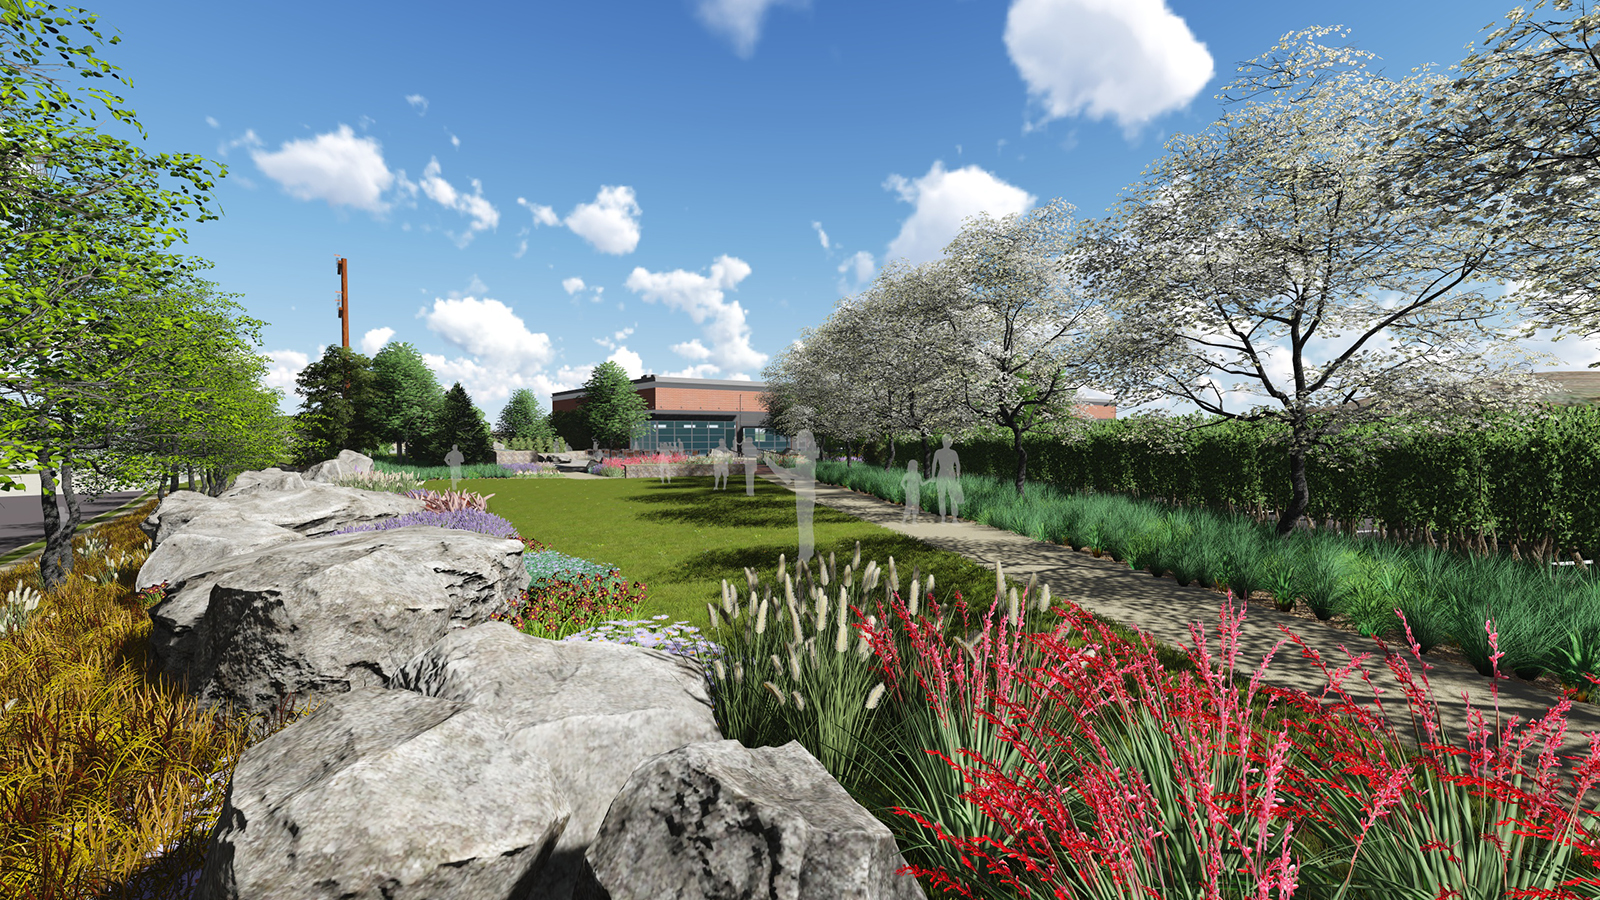 Healing Garden rendering in 20 years